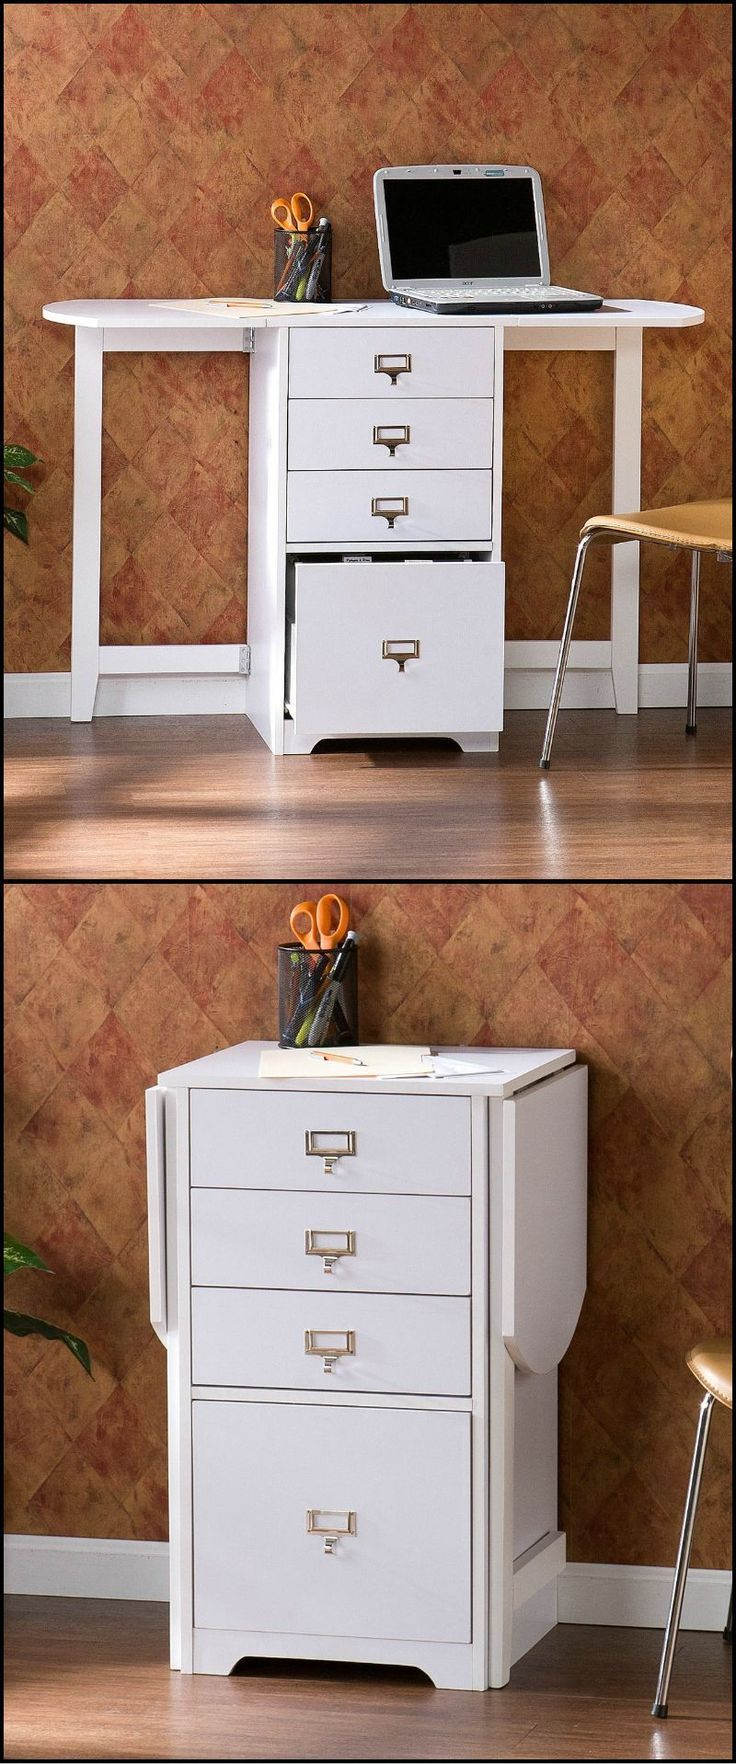 find this pin and more on small space ideas and tiny houses by missybartell - Space Saving Desk Ideas